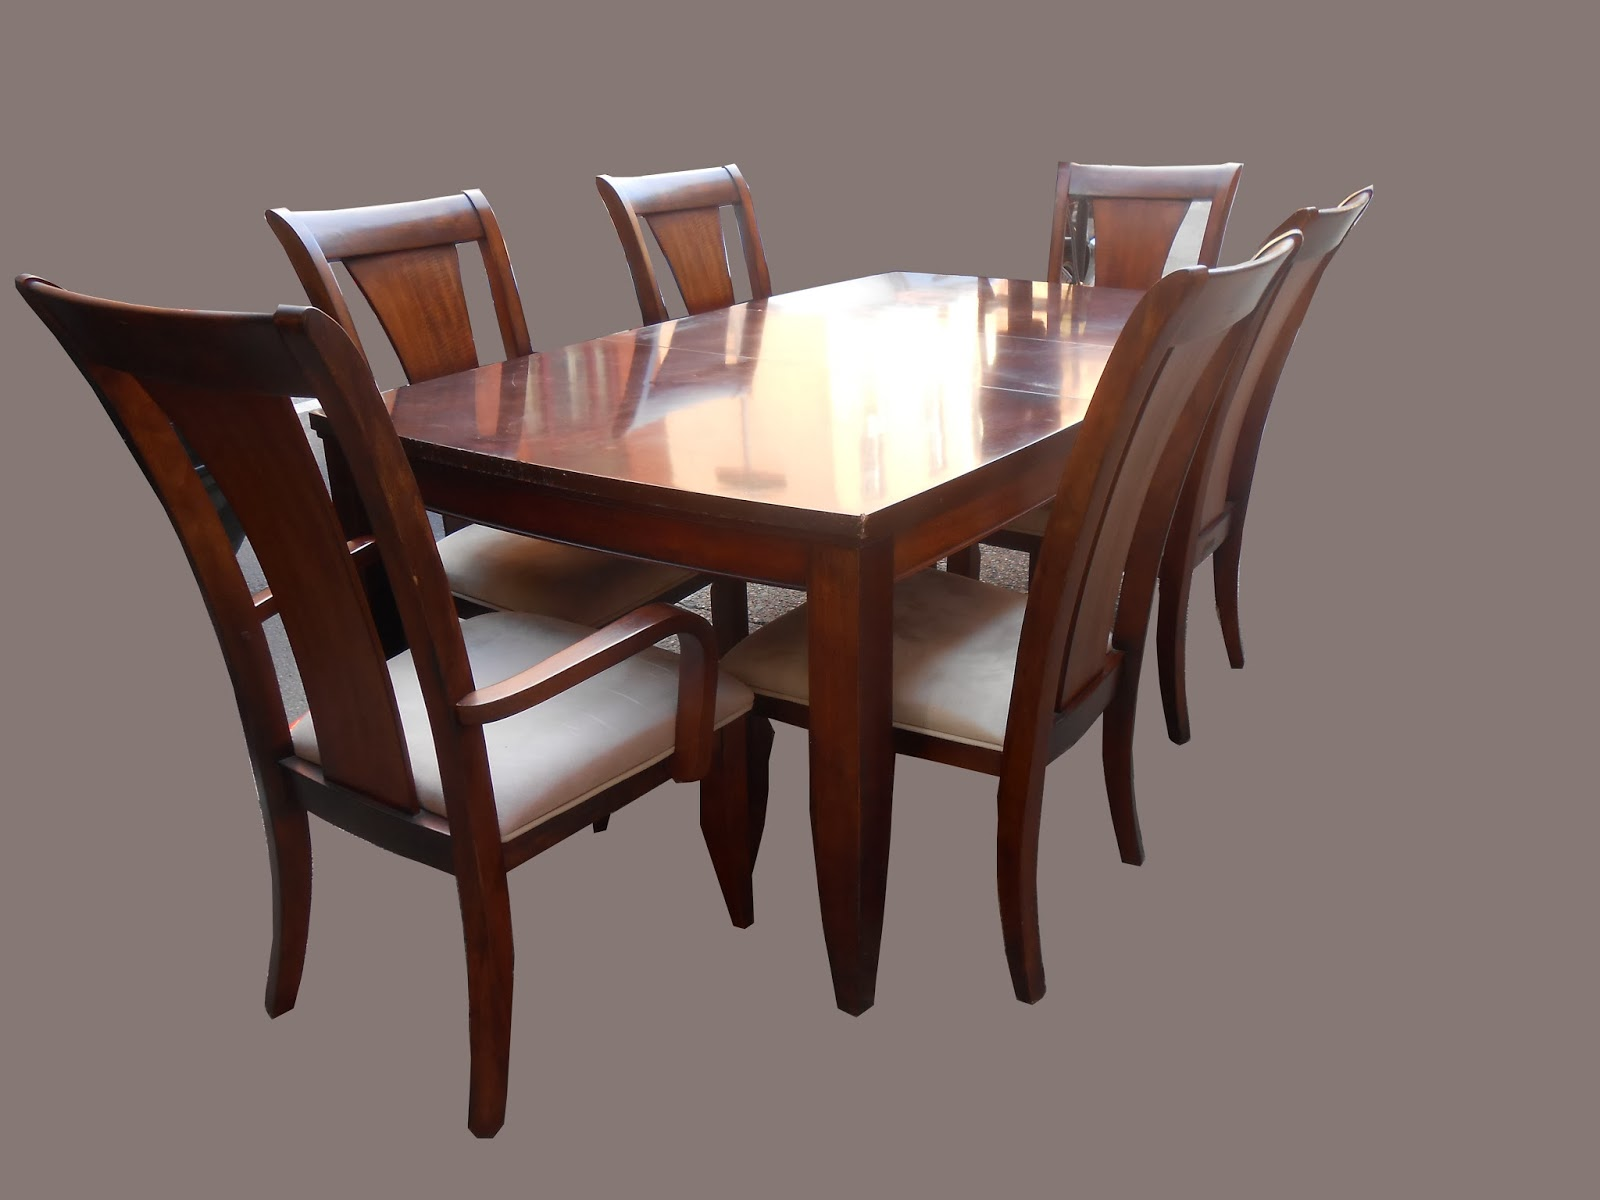 Uhuru furniture collectibles mahogany dining table w 6 for Dining table and chairs